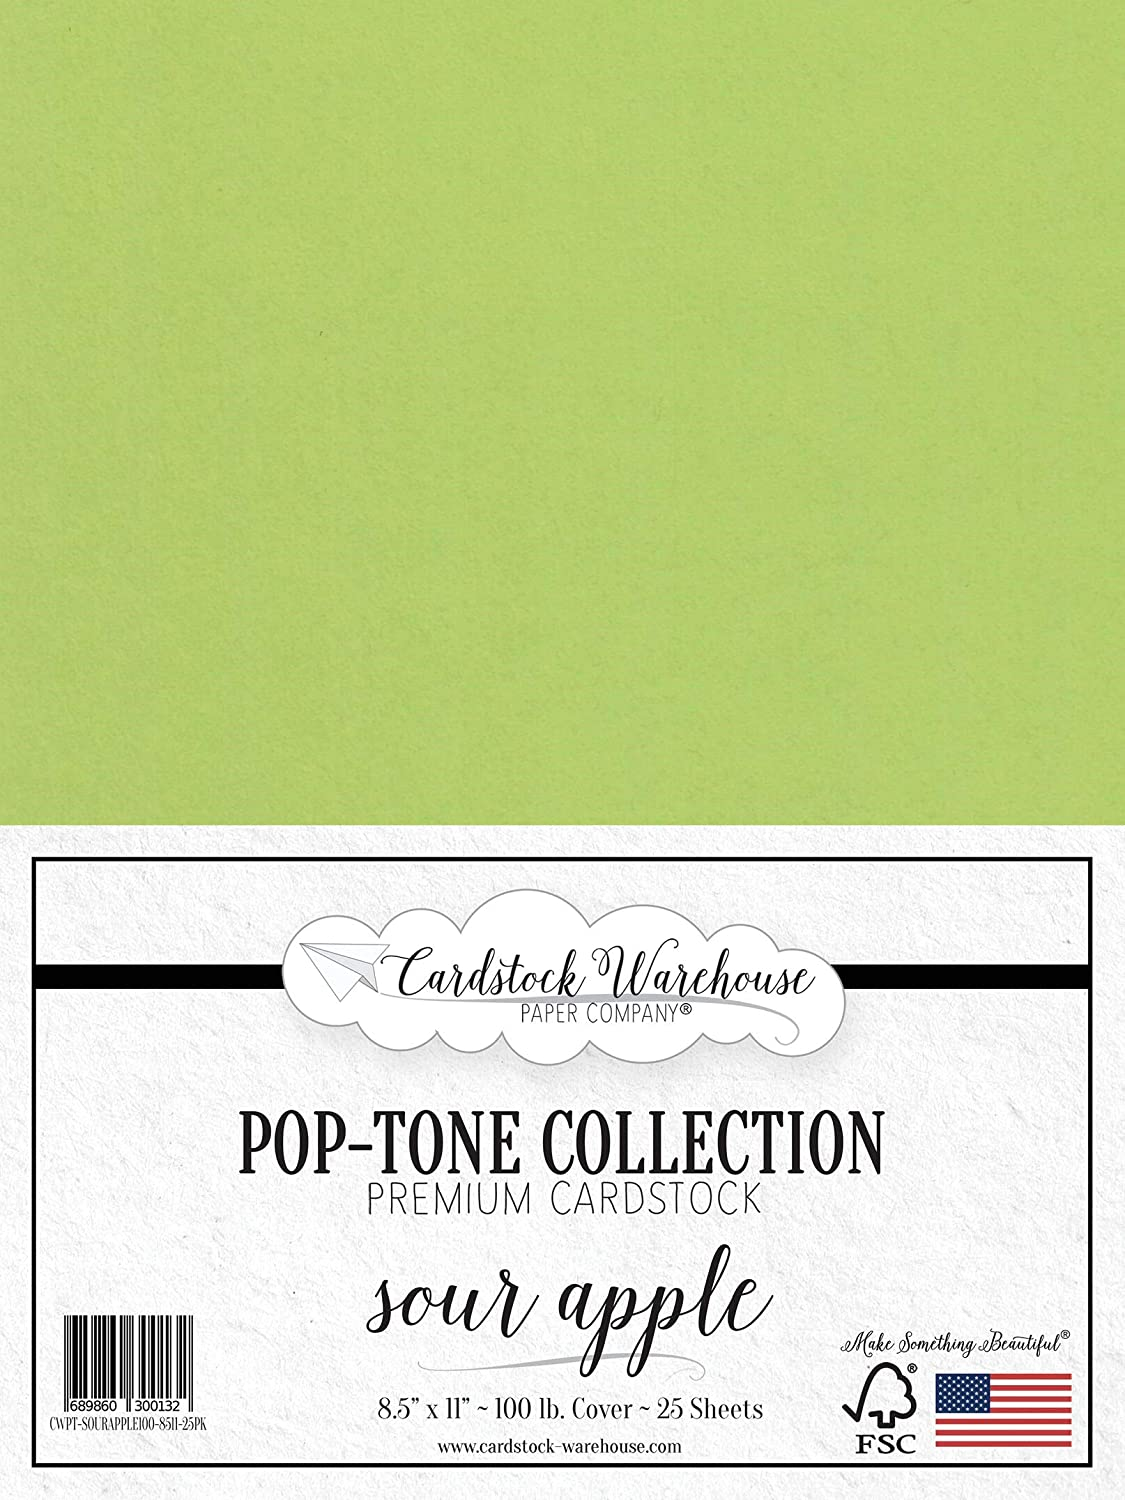 Sour Apple Green Cardstock Paper - 8.5 x 11 inch 100 lb. Heavyweight Cover -25 Sheets from Cardstock Warehouse